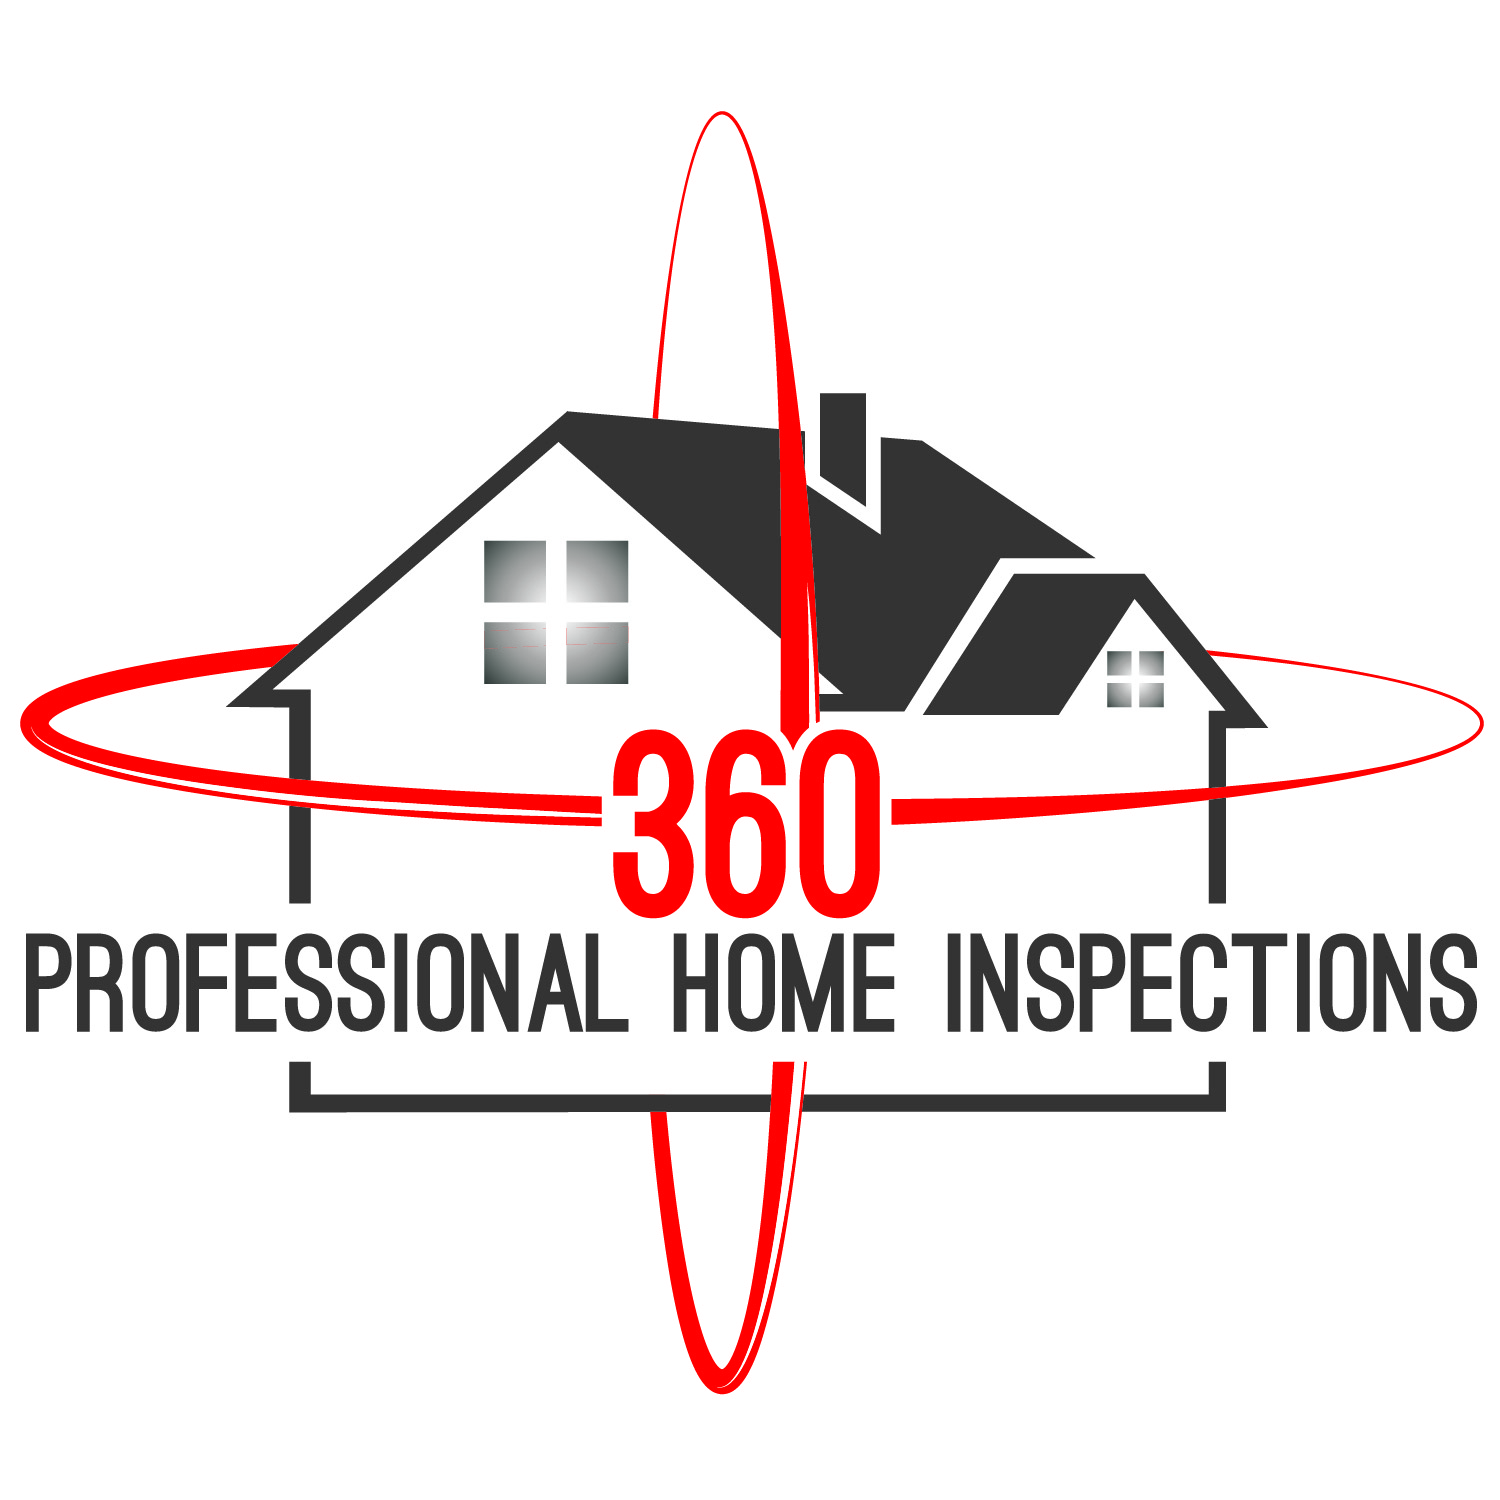 360 Professional Home Inspections, LLC